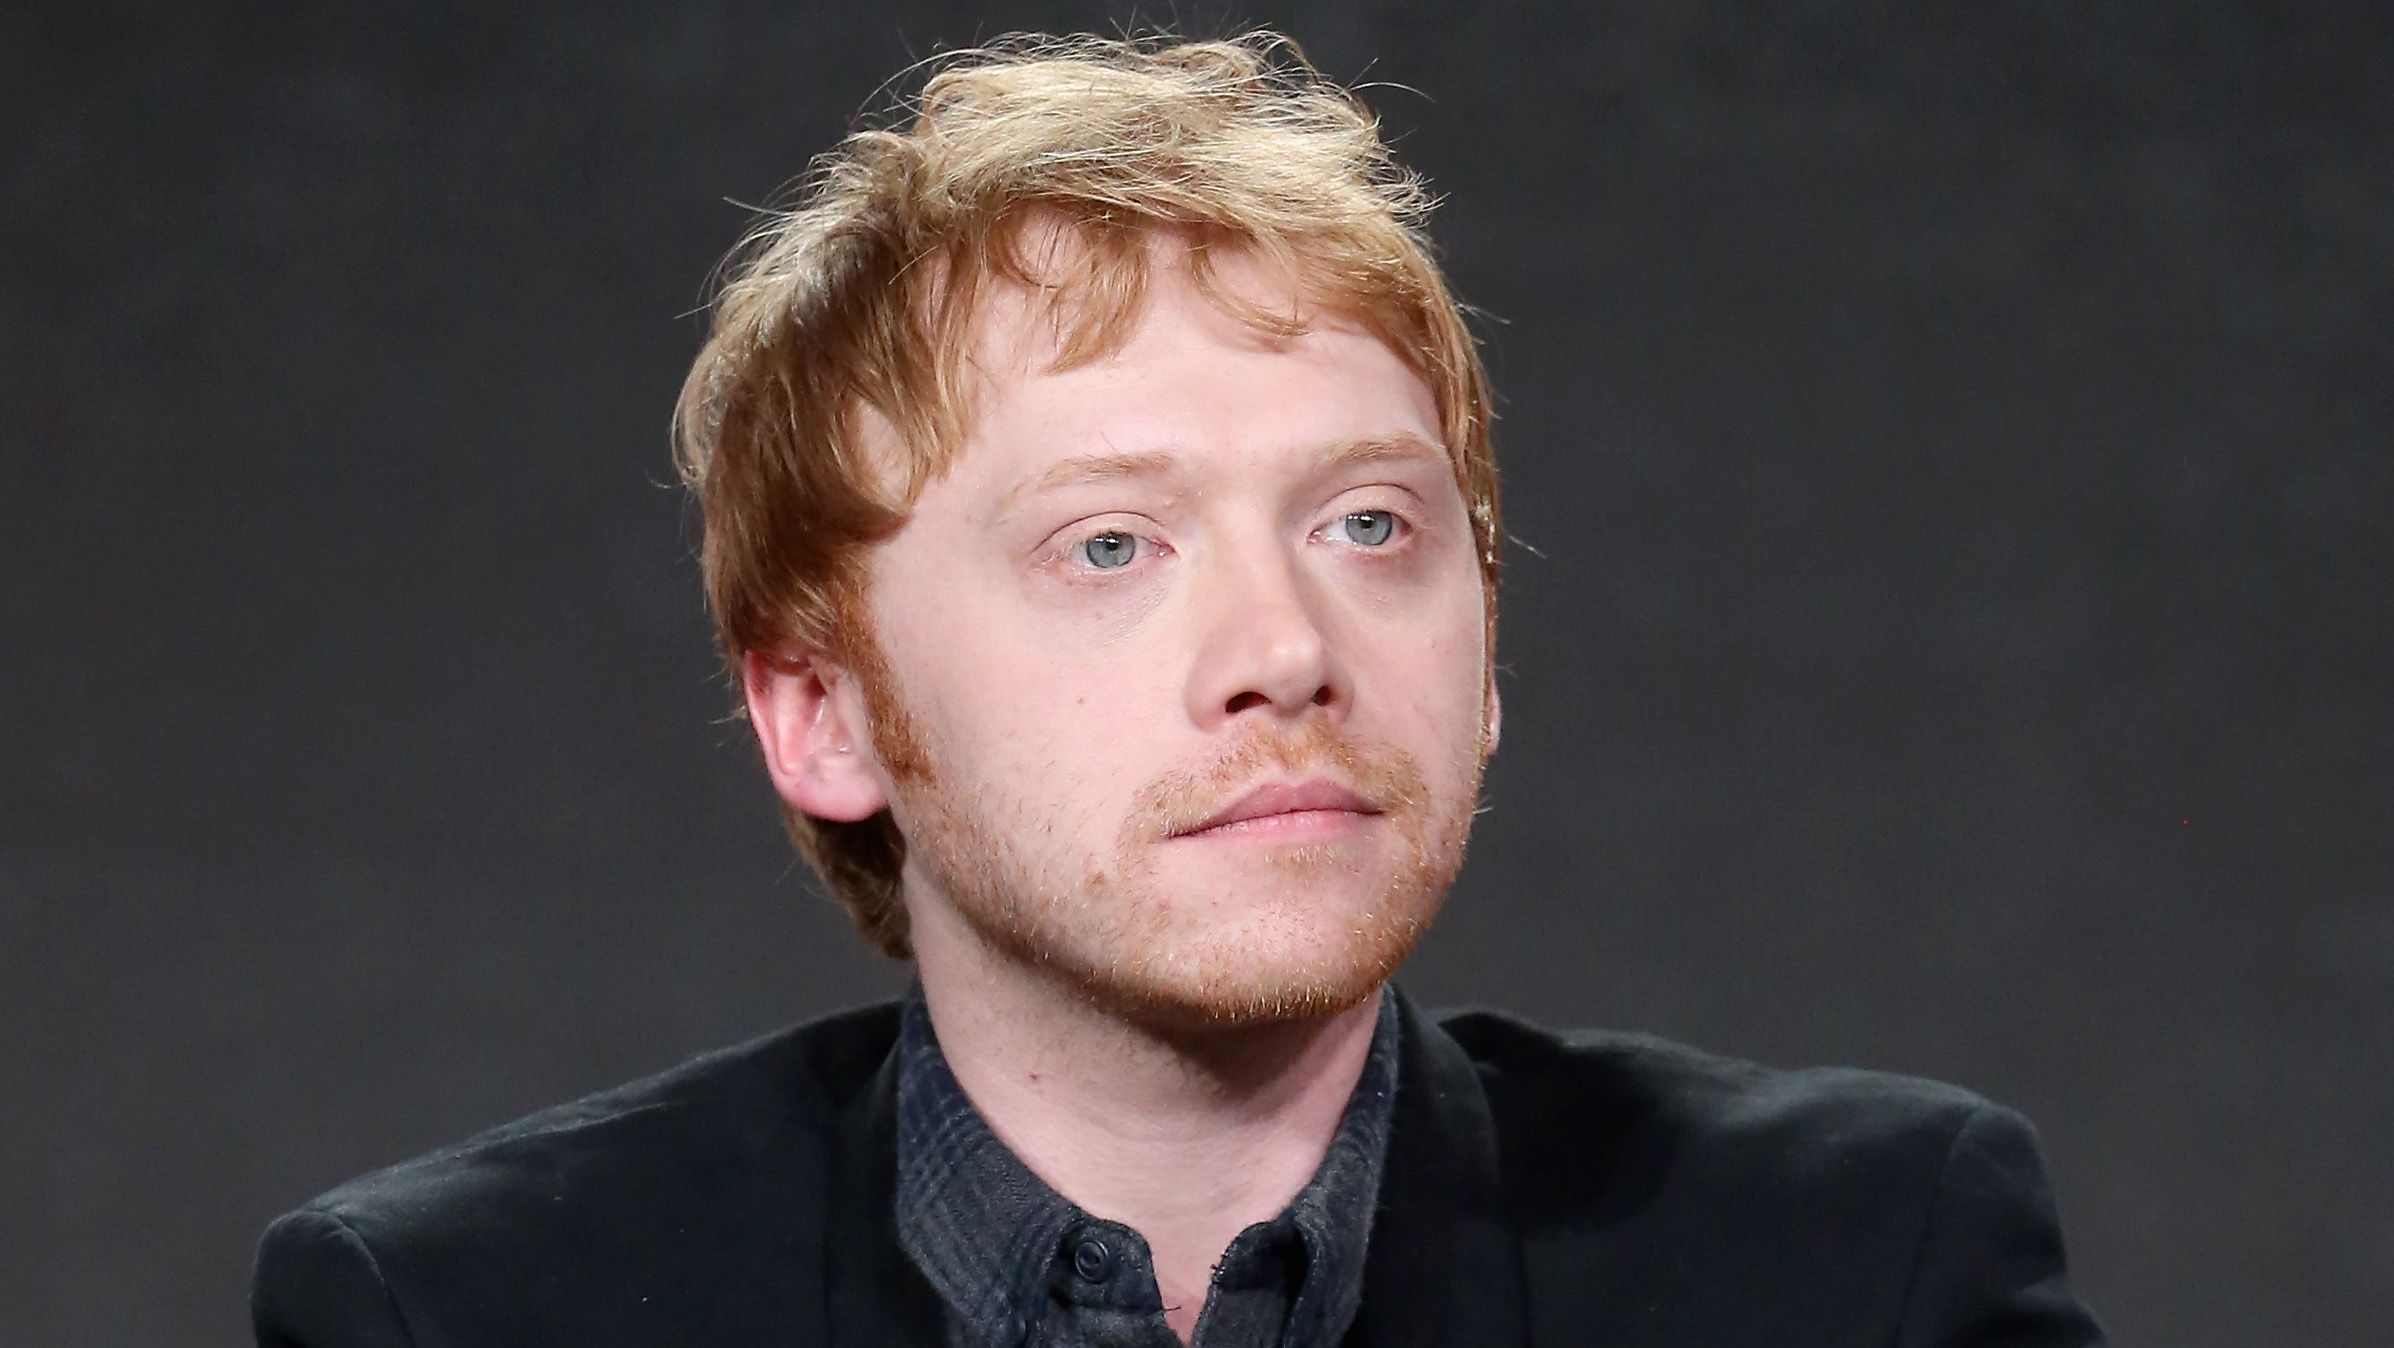 Harry Potter S Rupert Grint Couldn T Even Really Guess How Much Money He Has In The Bank Mental Floss